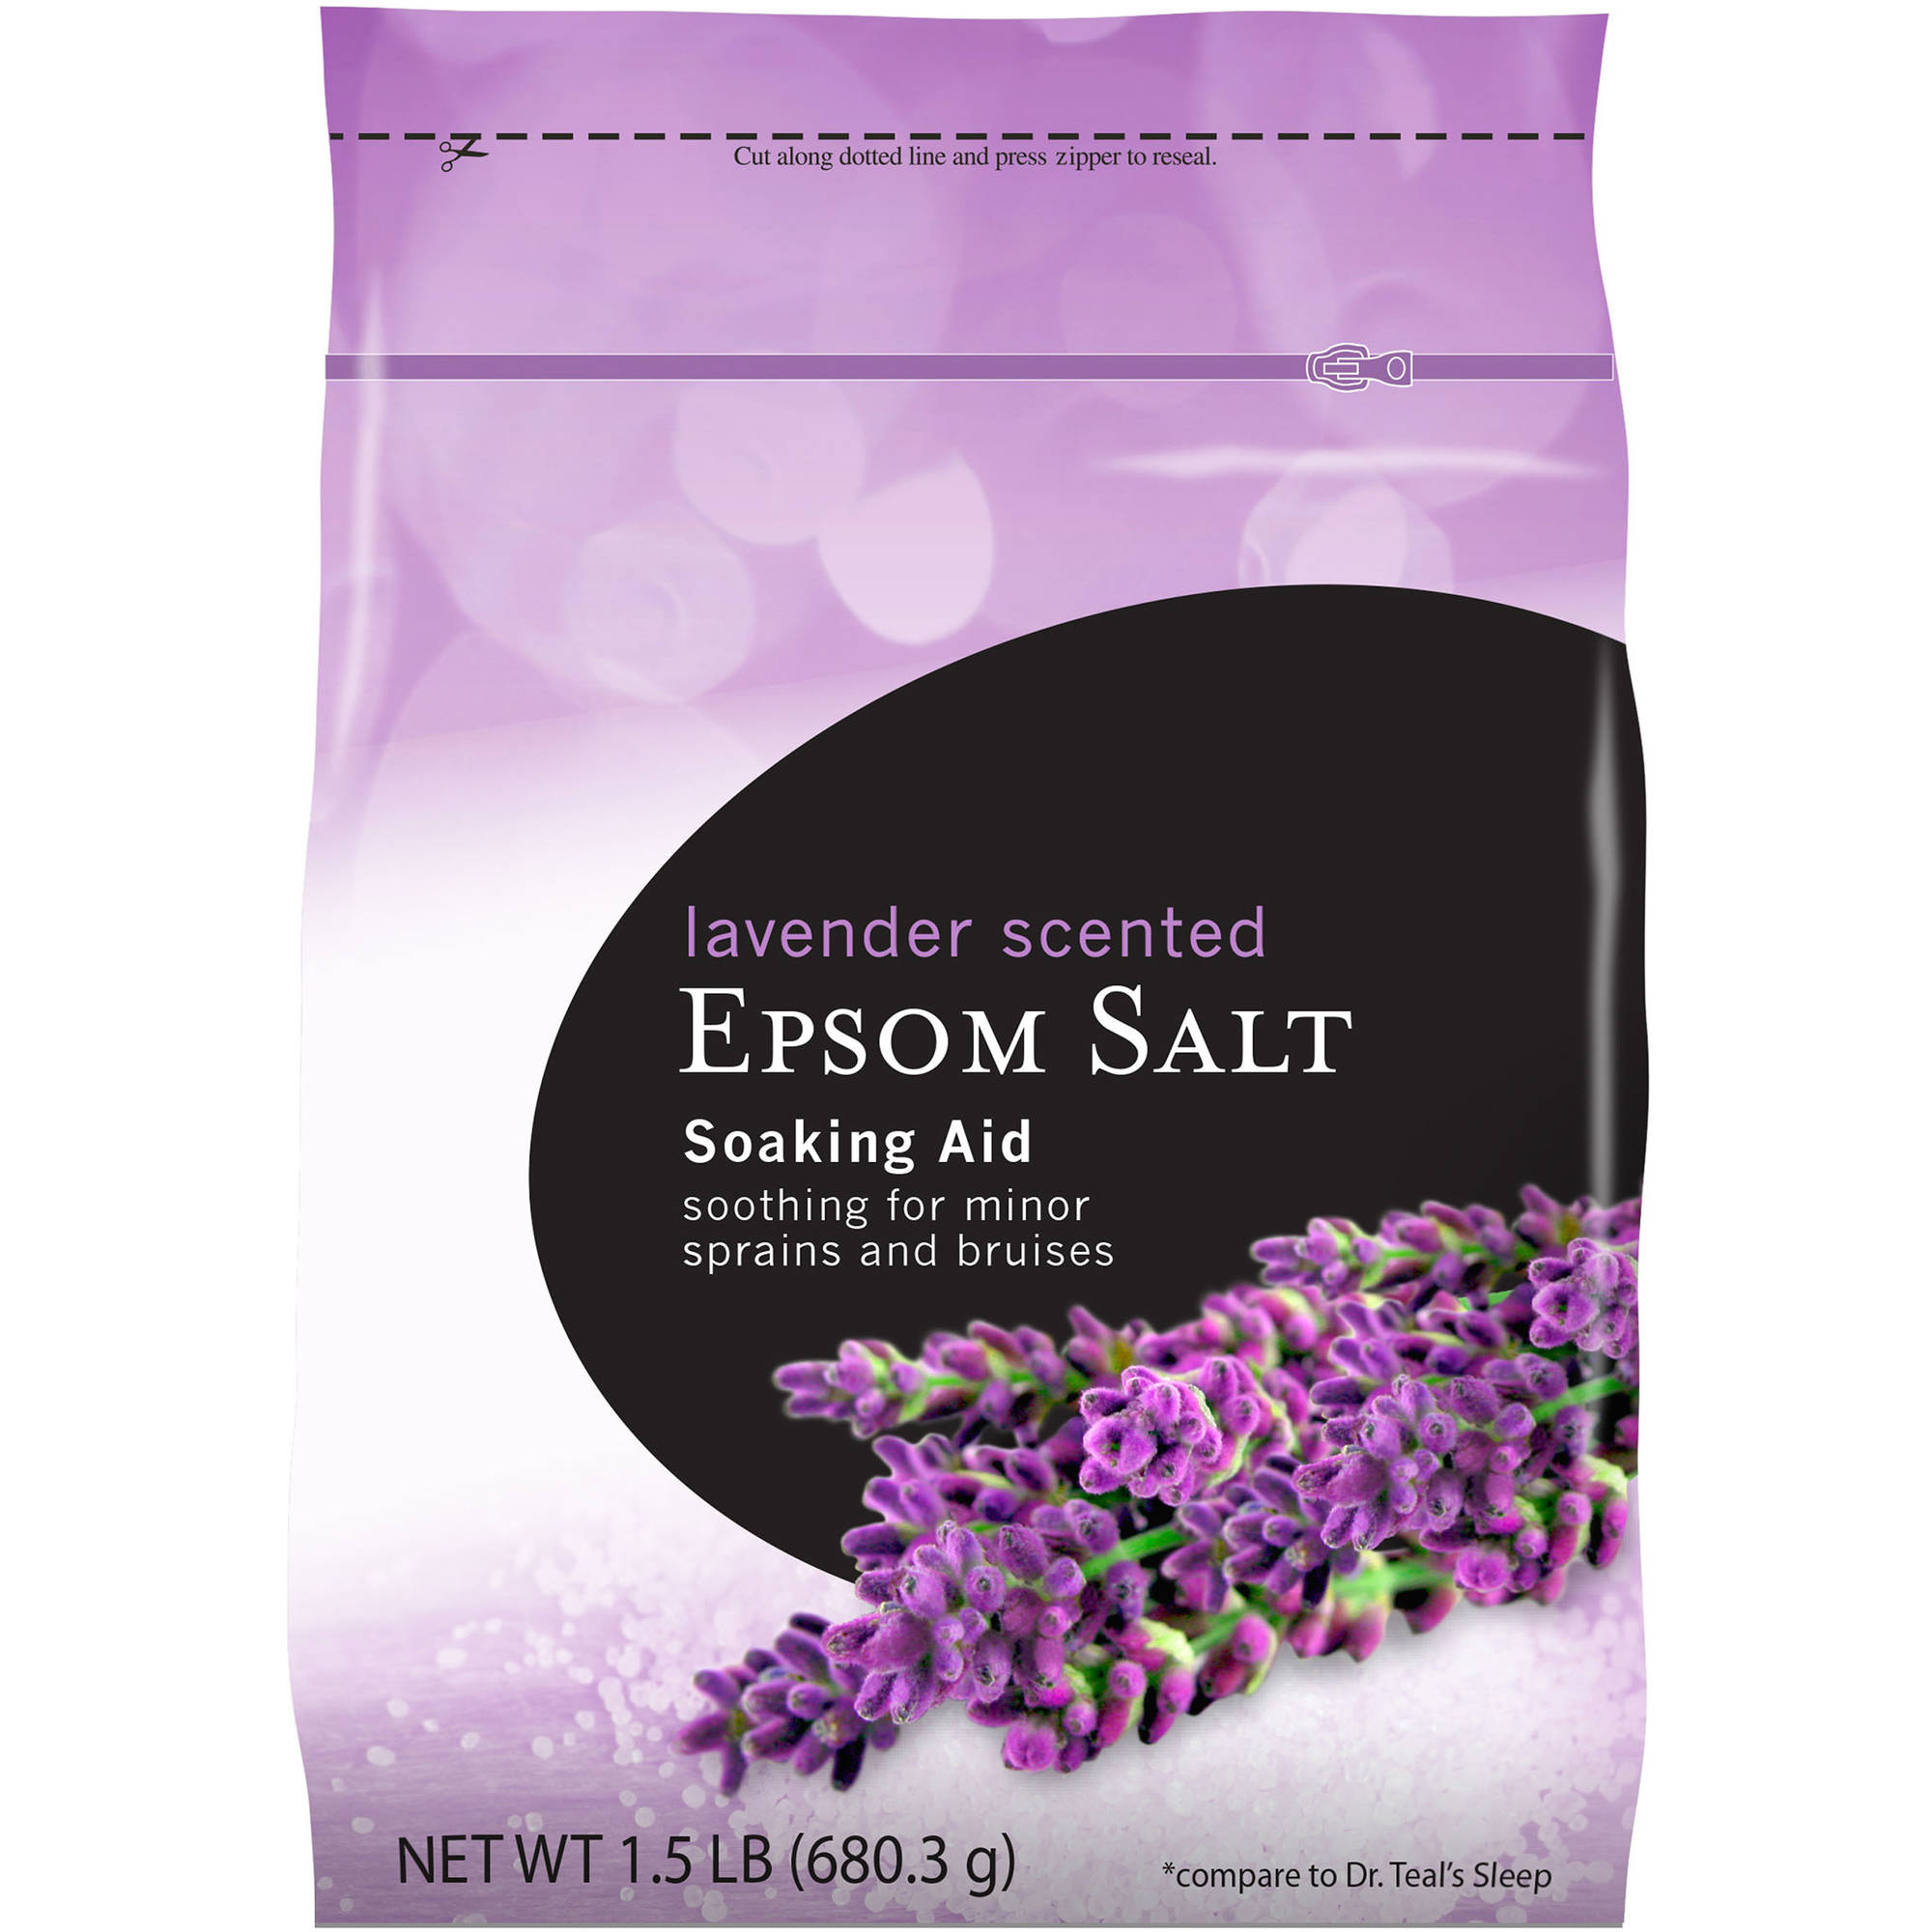 Lavender Scented Epsom Salt Soaking Aid, 24 oz